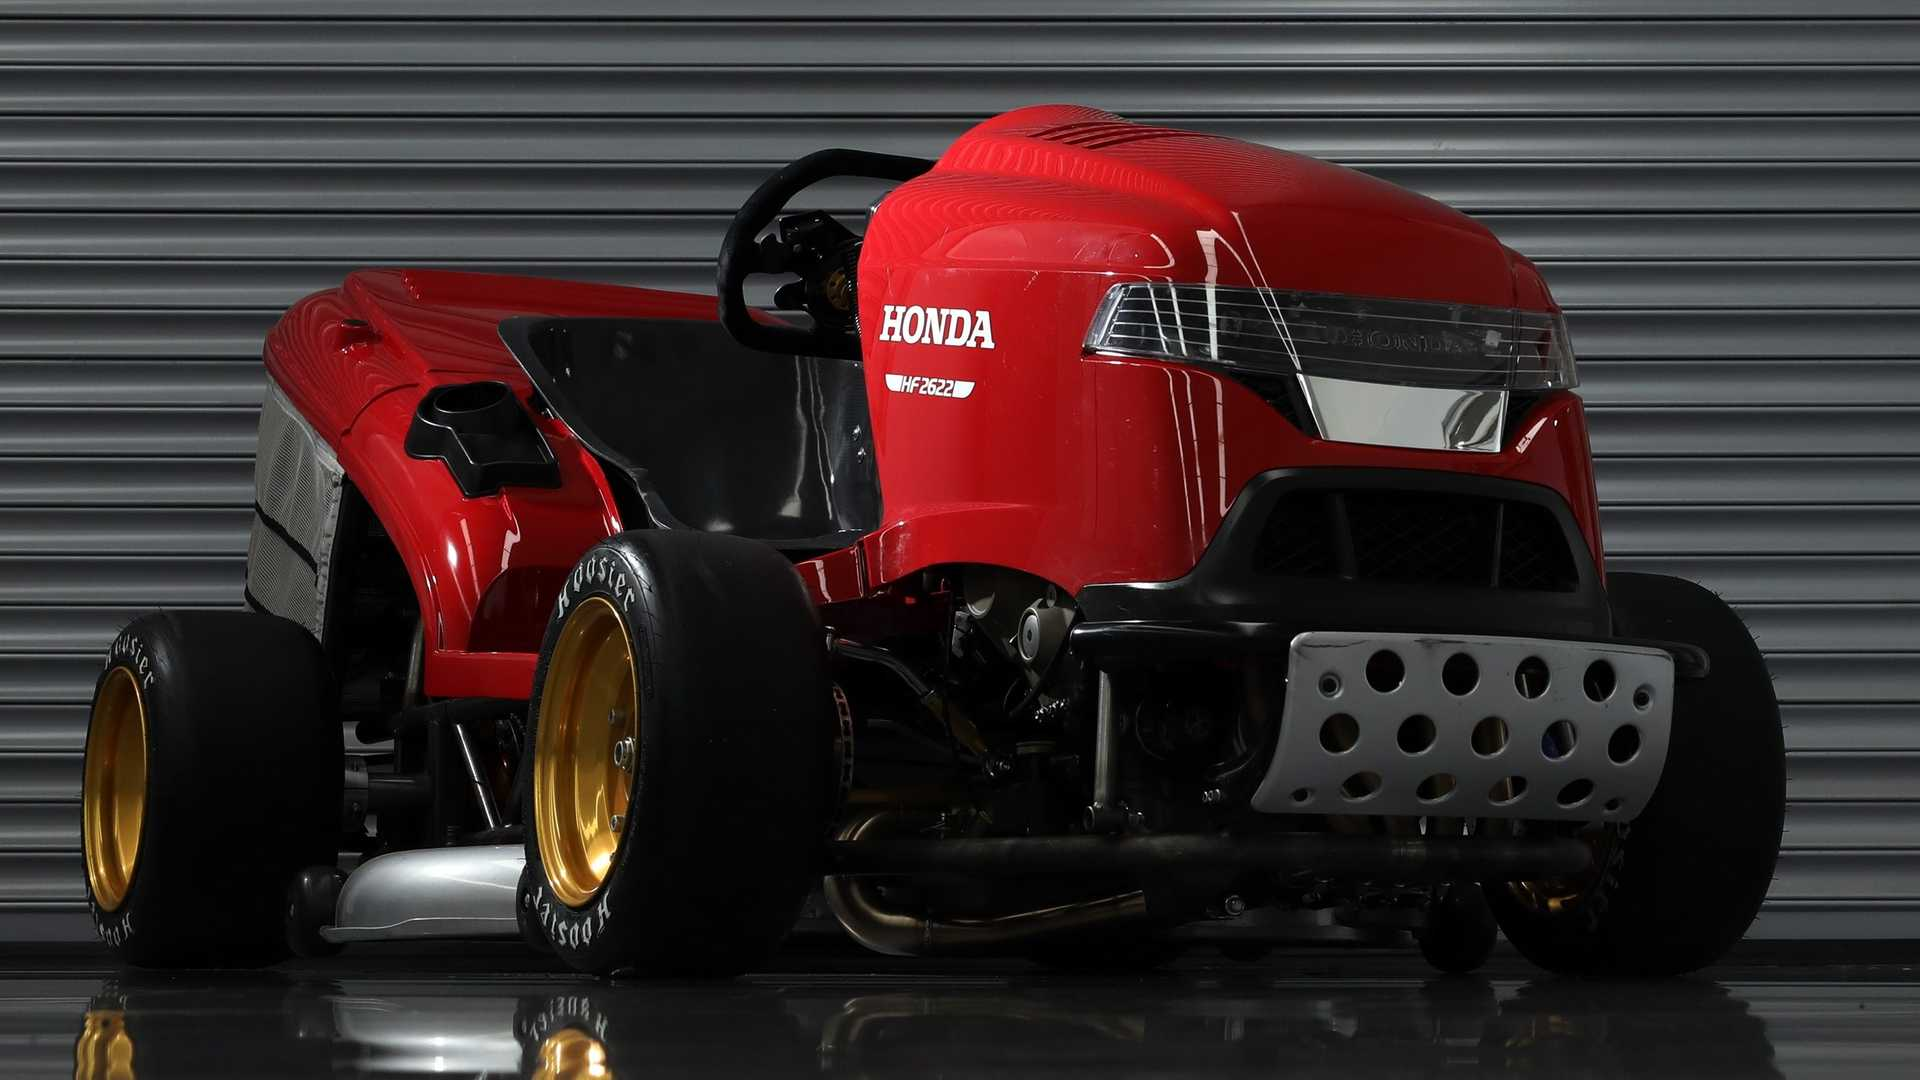 Car manufacturer Honda is currently busy developing the next generation of the Mean Mower, allegedly the world's fastest lawnmower